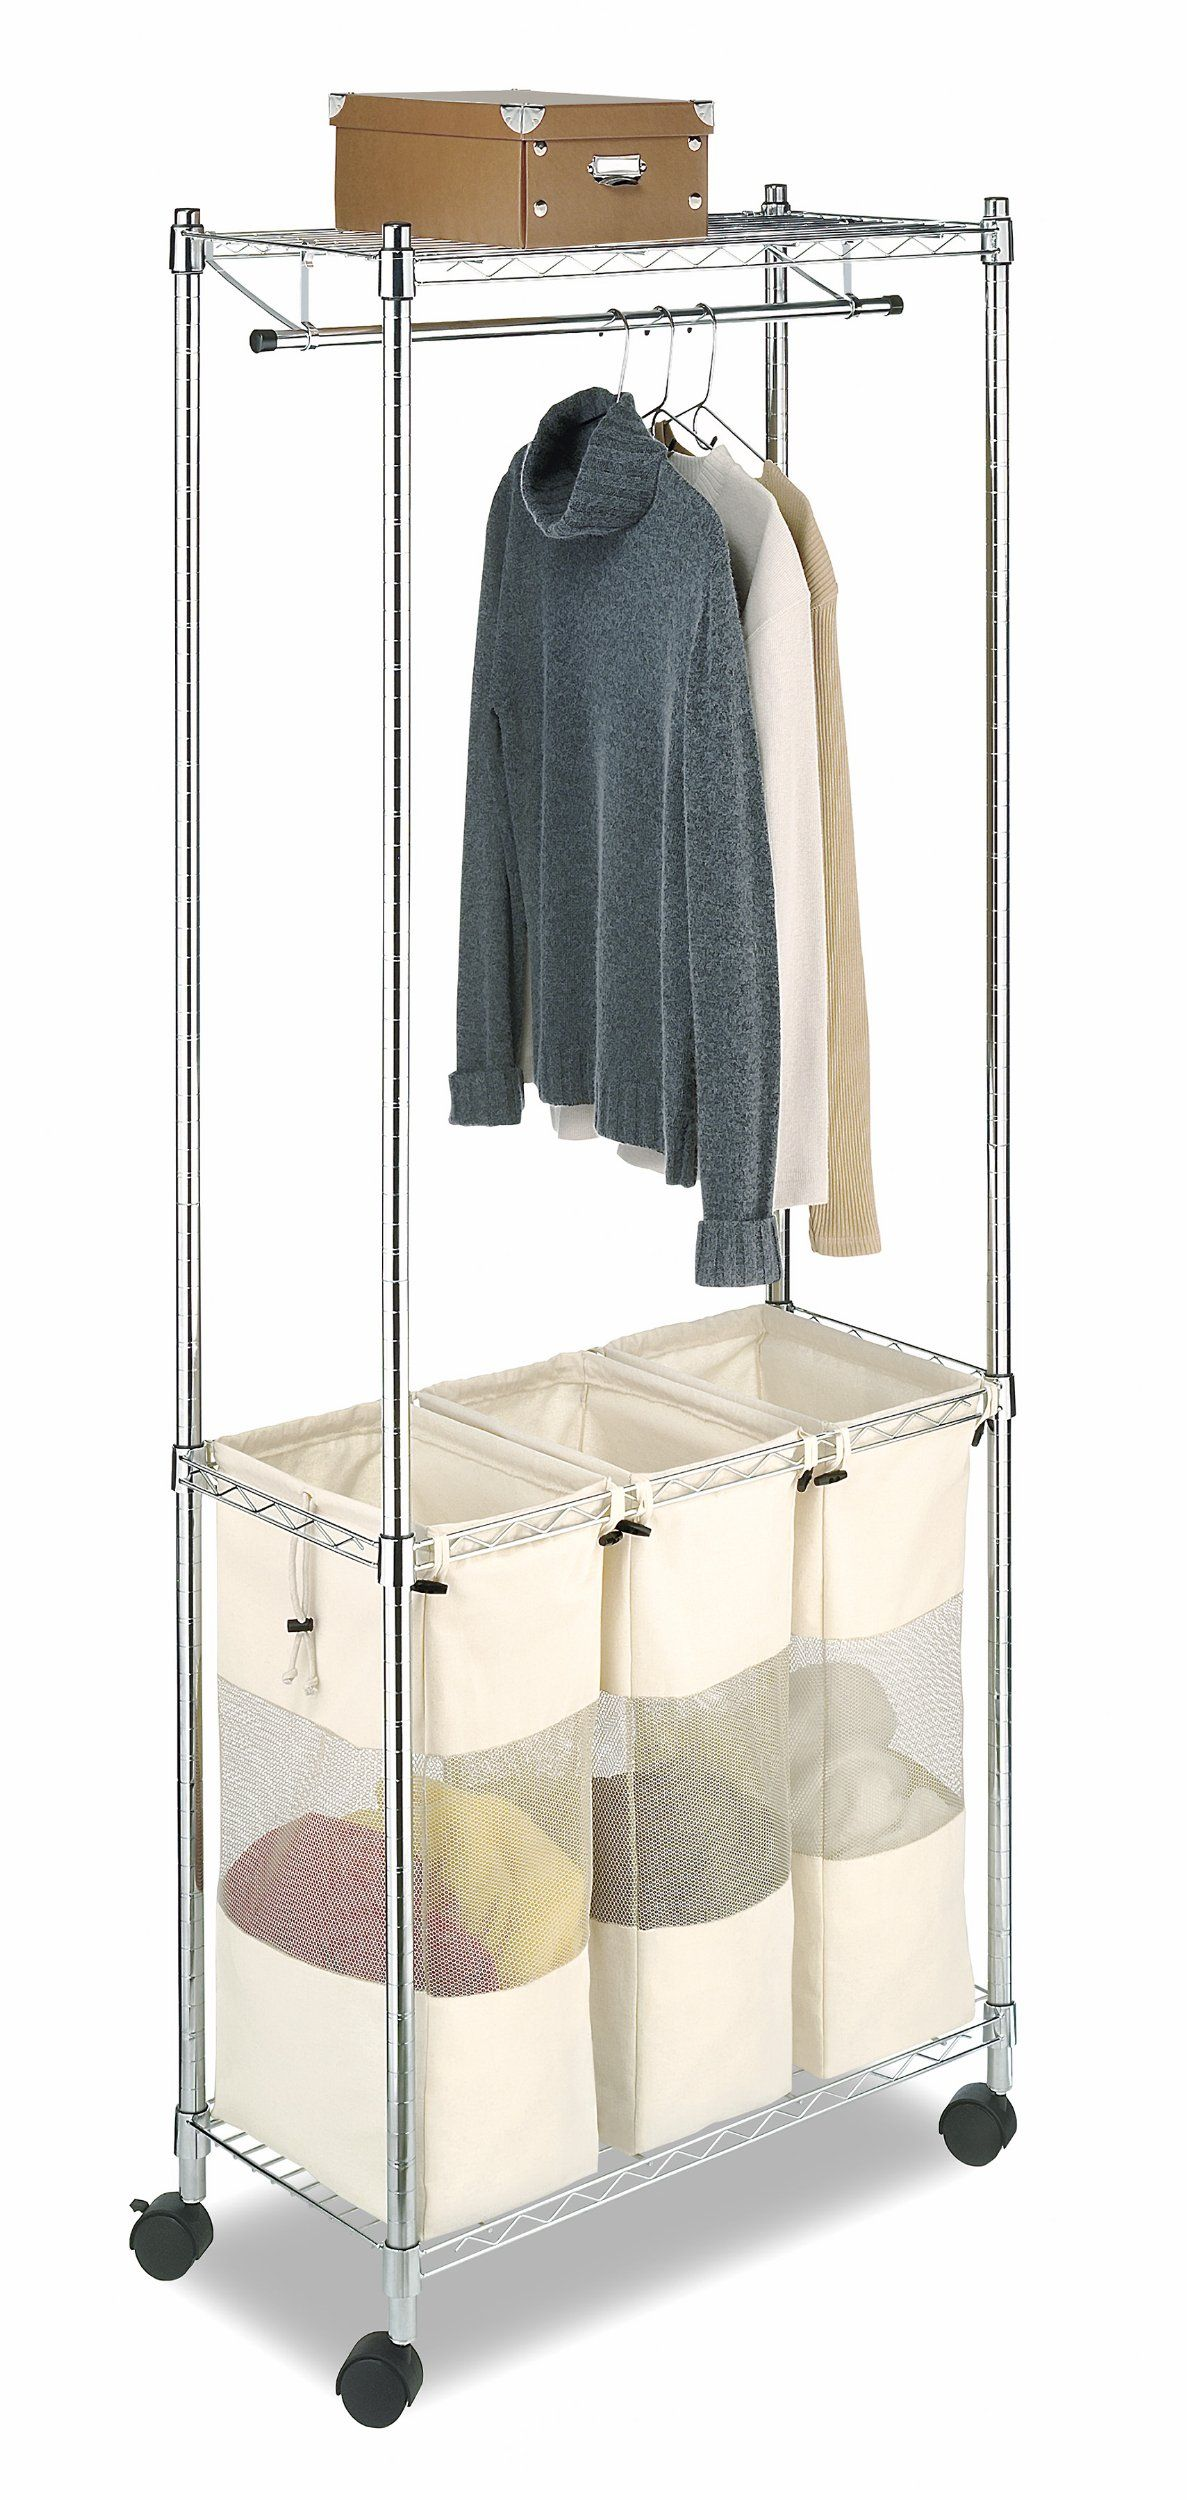 Laundry Hanging Bar 60off Songmics 4 Bag Rolling Laundry Sorter With Hanging Bar